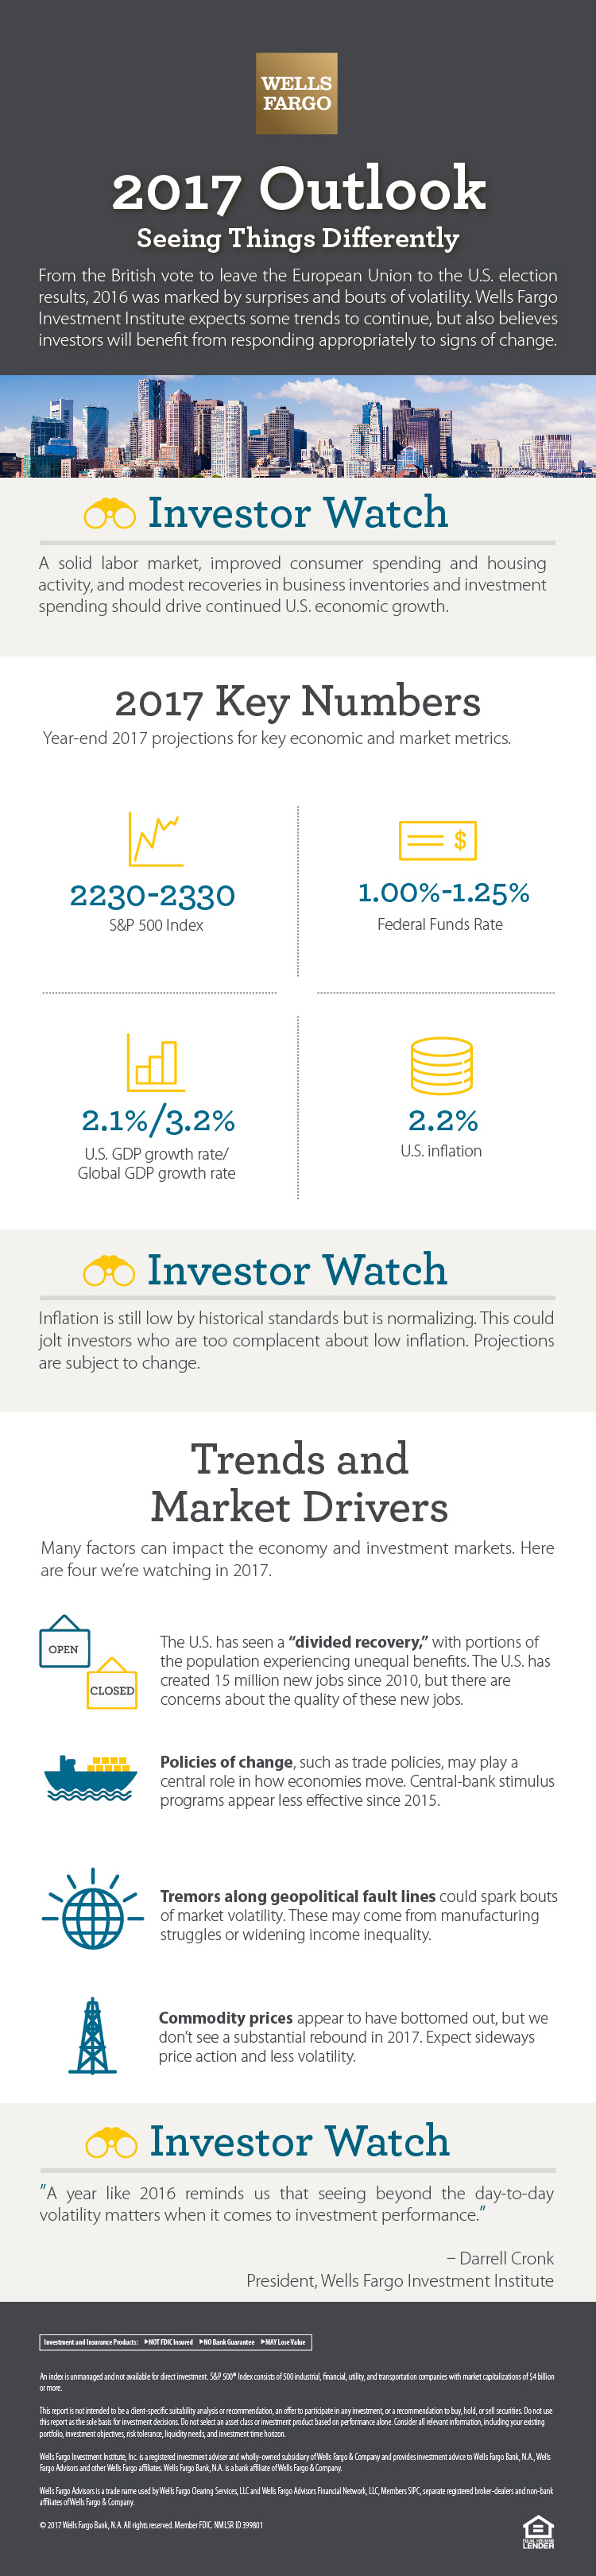 The headline of this infographic is 2017 Outlook: Seeing Things Differently. Introductory text says that from the British vote to leave the European Union to the U.S. election results, 2016 was marked by surprises and bouts of volatility. Wells Fargo Investment Institute expects some trends to continue, but also believes investors will benefit from responding appropriately to signs of change. A section labeled investment watch says that a solid labor market, improved consumer spending and housing activity, and modest recoveries in business inventories and investment spending should drive continued U.S. economic growth. In the 2017 Key Numbers section, four year-end 2017 projections for key economic and market metrics are listed: 2230-2330 — S&P 500 Index; 1.00%-1.25% — Federal Funds Rate; 2.1%/3.2% — U.S. GDP growth rate/Global GDP growth rate; 2.2% — U.S. inflation. A section labeled investment watch says that inflation is still low by historical standards but is normalizing. This could jolt investors who are too complacent about low inflation. Projections are subject to change. In the Trends and Market Drivers section, text says the U.S. has seen a